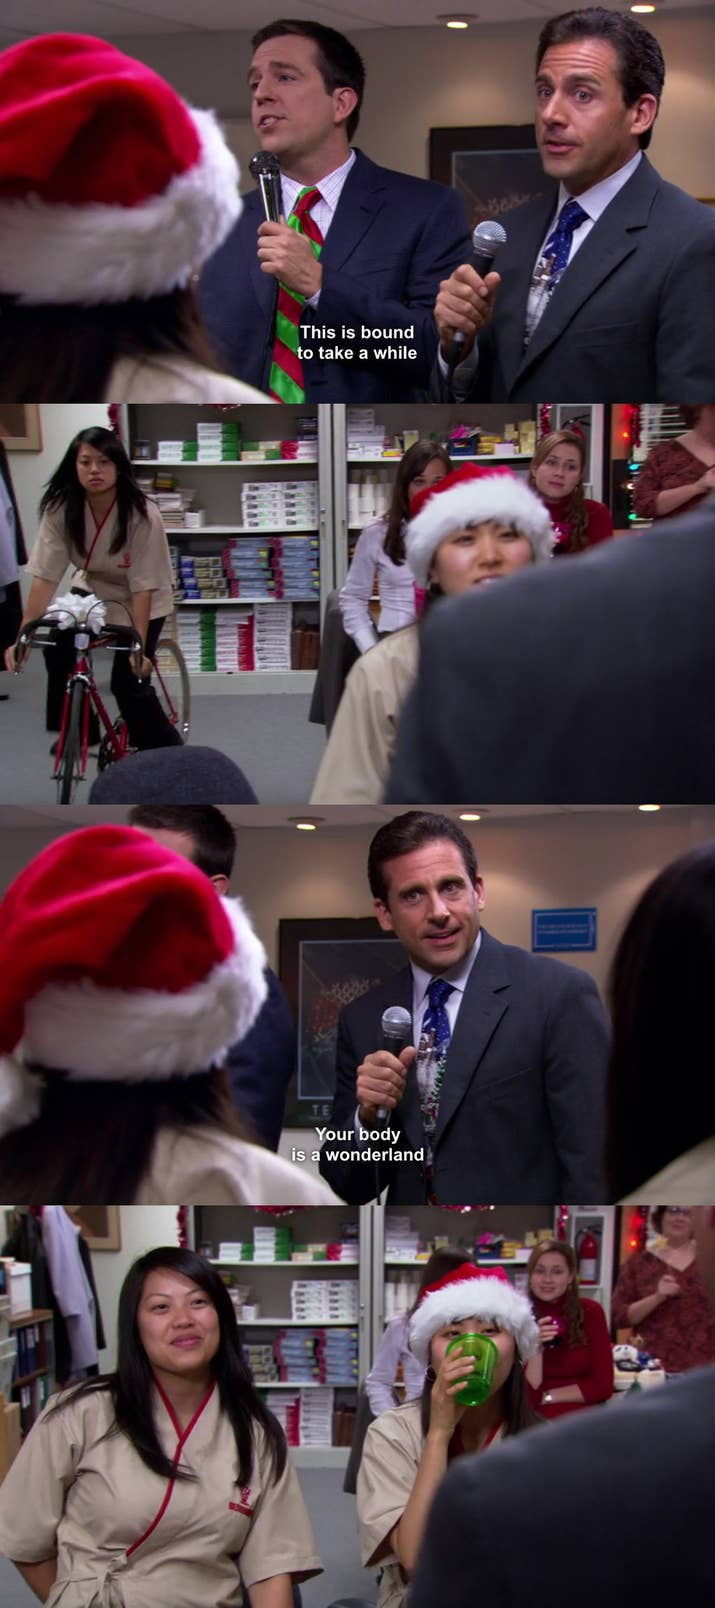 """The Episode: """"A Benihana Christmas"""" (Season 3, Episode 10)Why It Hurts To Watch: The whole situation is awkward enough, but the moment of panic of Michael's face just tops the whole thing off. And when he marks her later? Oof. Plus, they're singing """"Your Body Is a Wonderland,"""" which cranks the embarrassment factor to 11."""